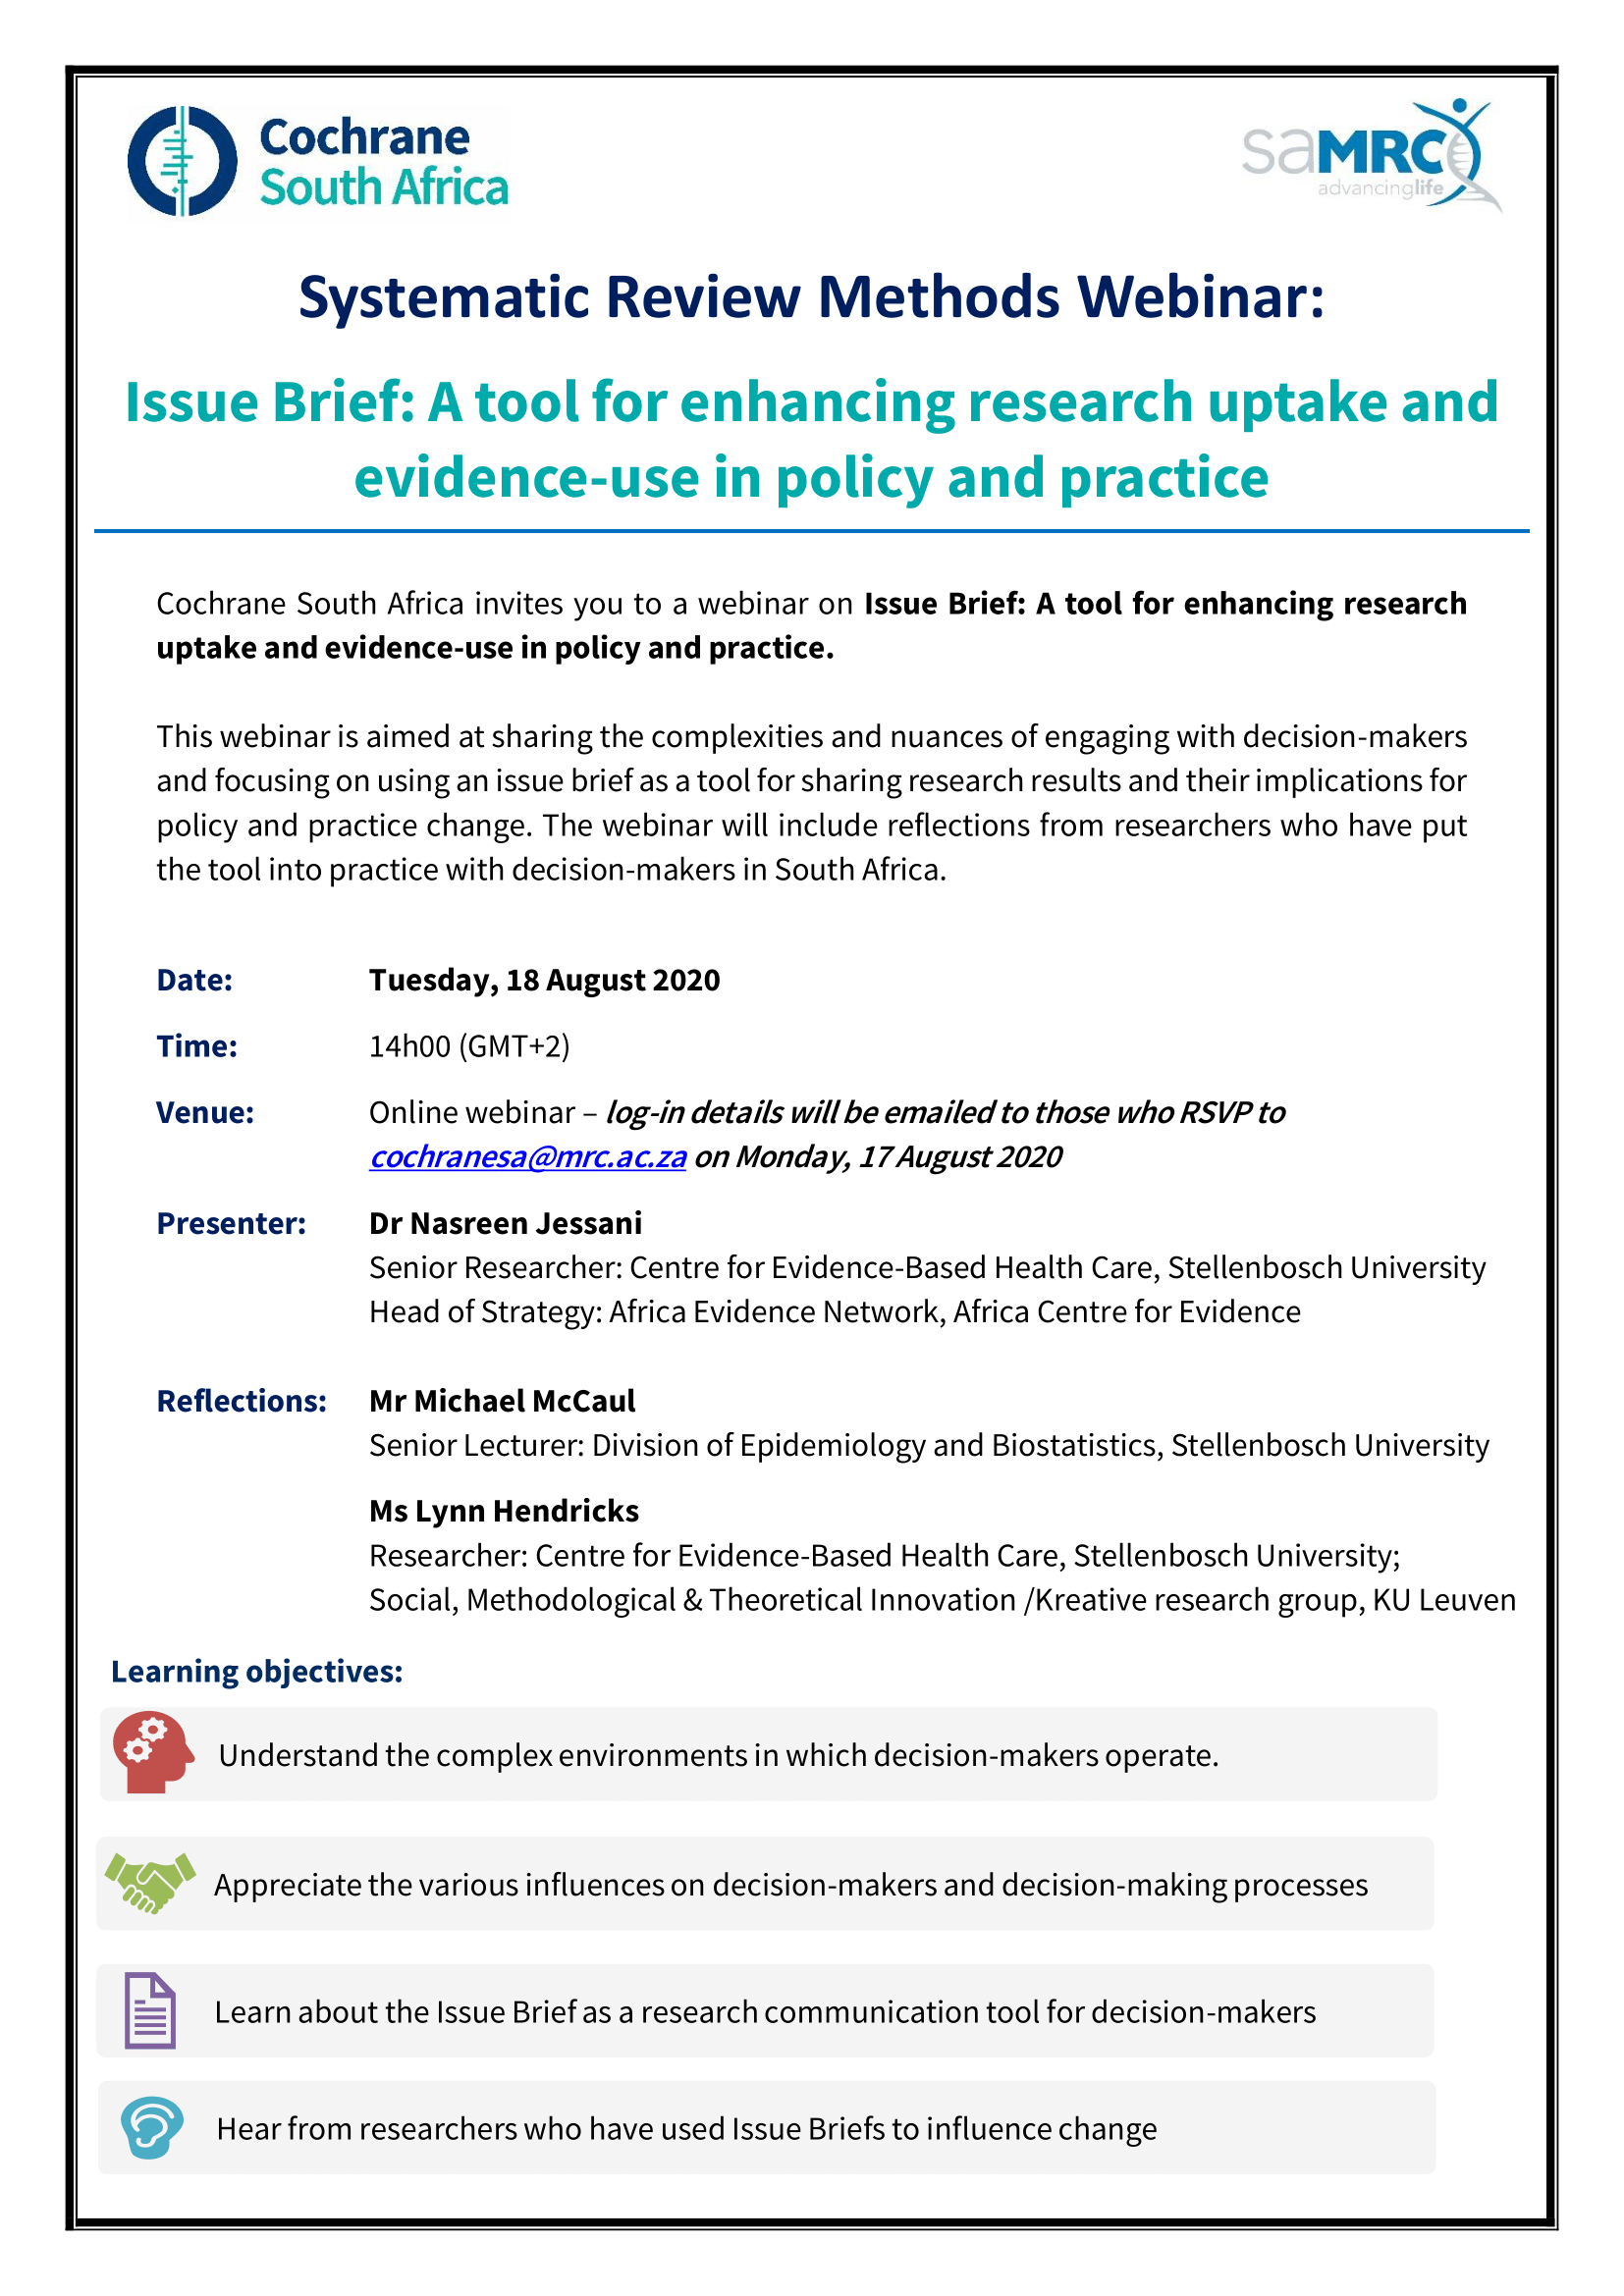 Issue brief: A tool for enhancing research uptake and evidence-use in policy and practice